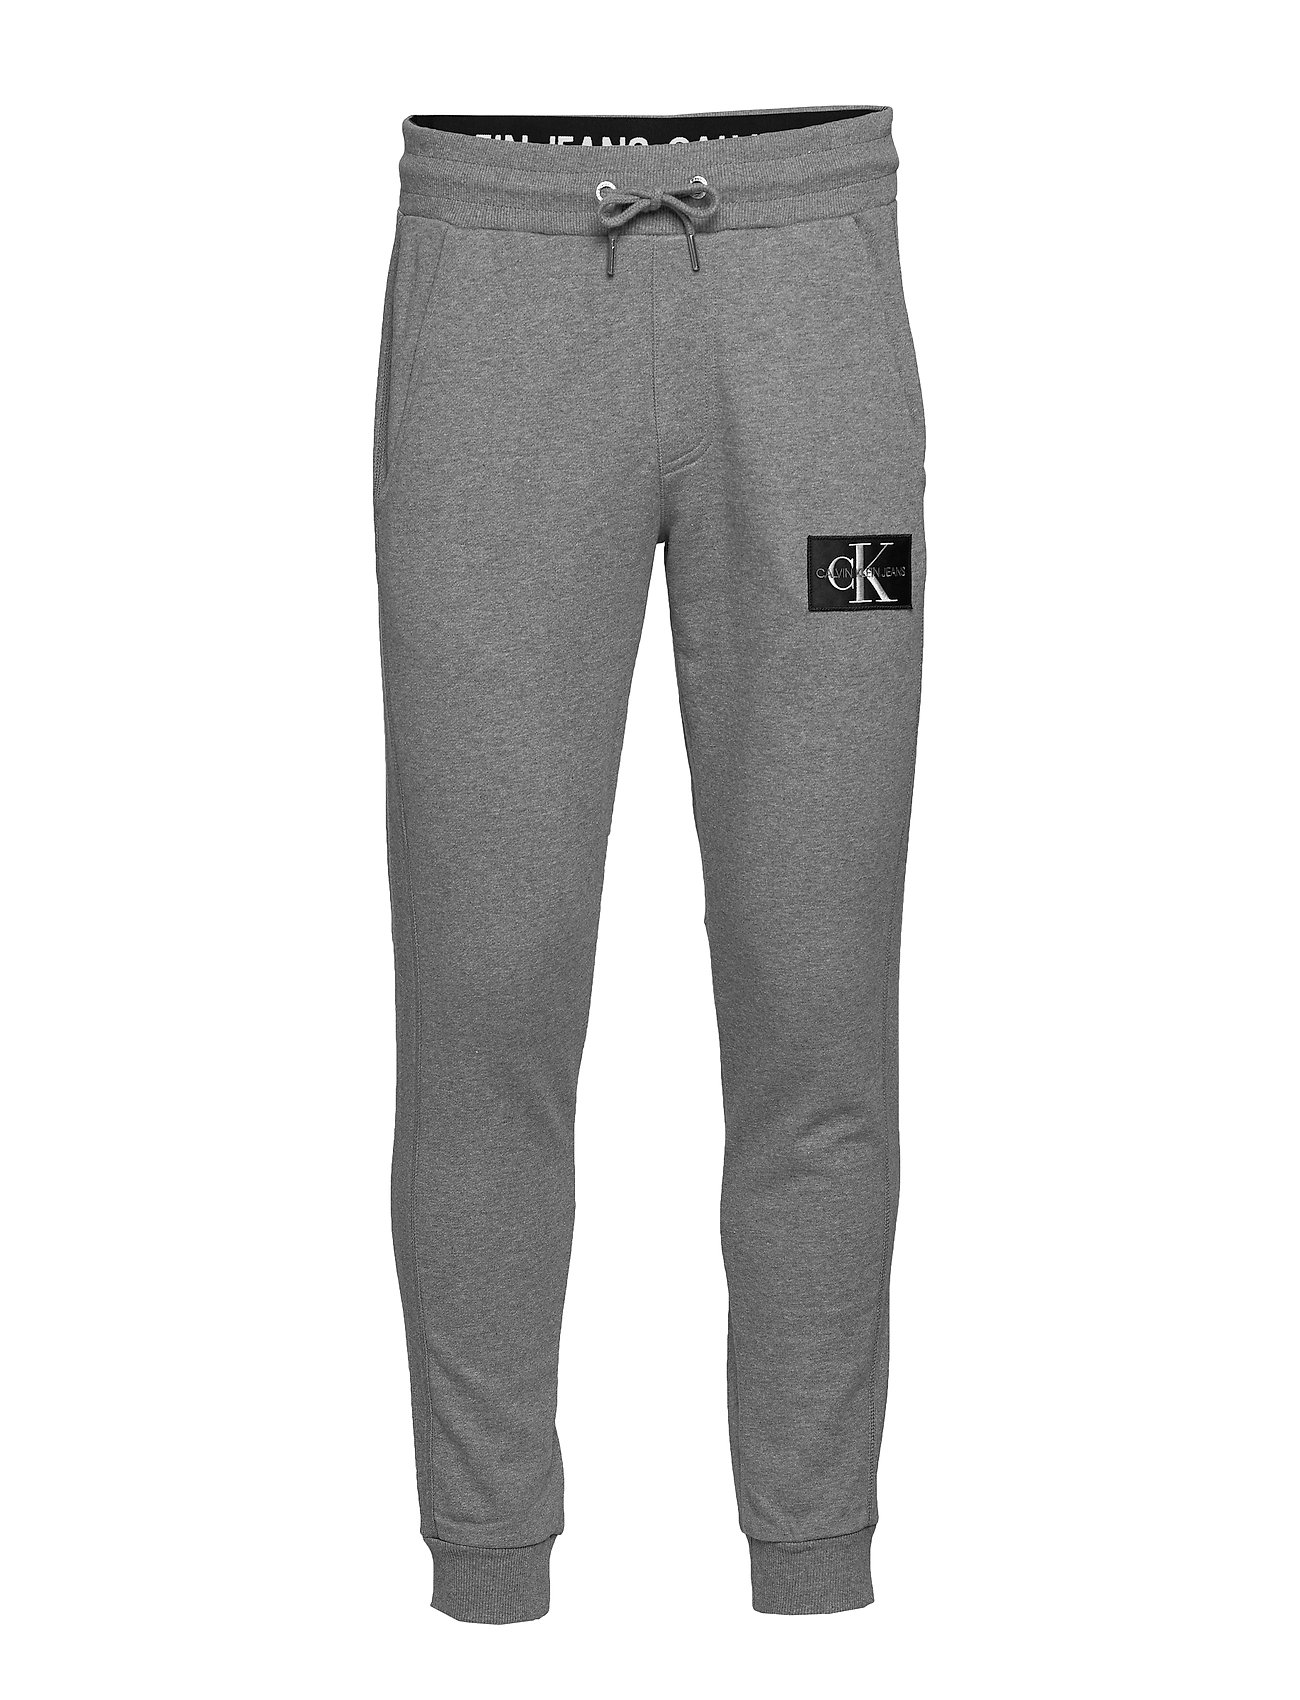 Calvin Klein Jeans MONOGRAM PATCH HWK PANT - MID GREY HEATHER / POSEIDON